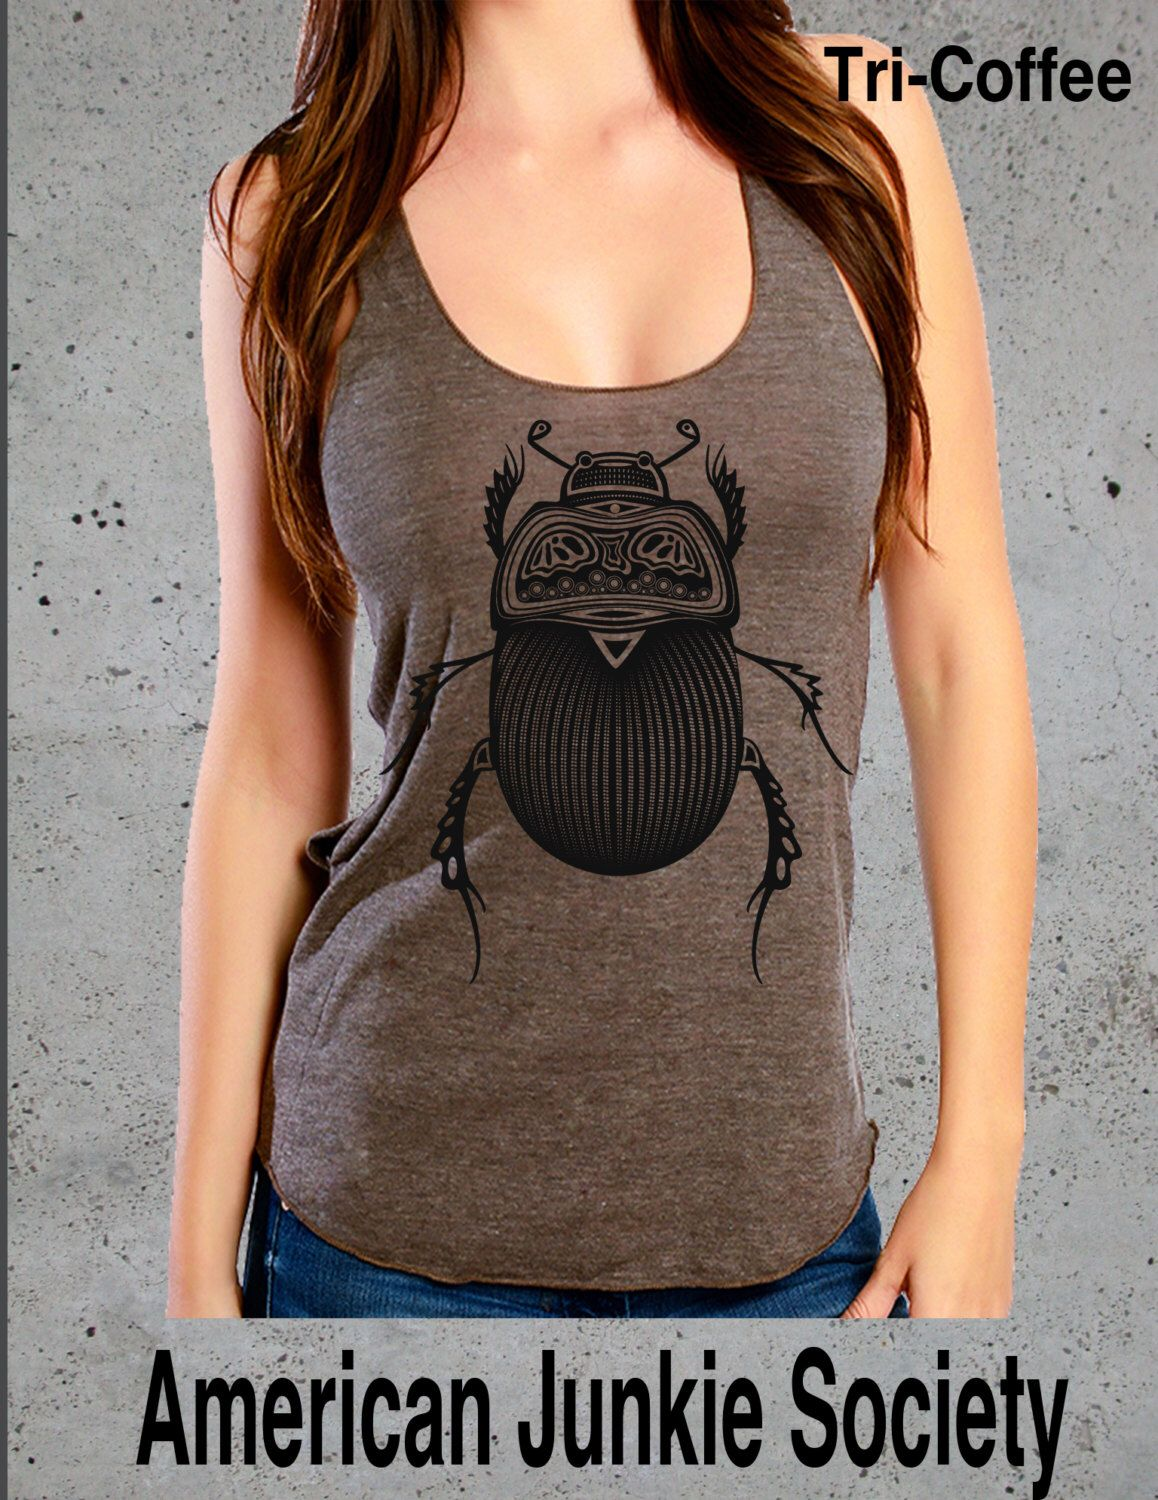 Insect Bug Tank Top Beetle Tshirt,Graphic tee Racerback